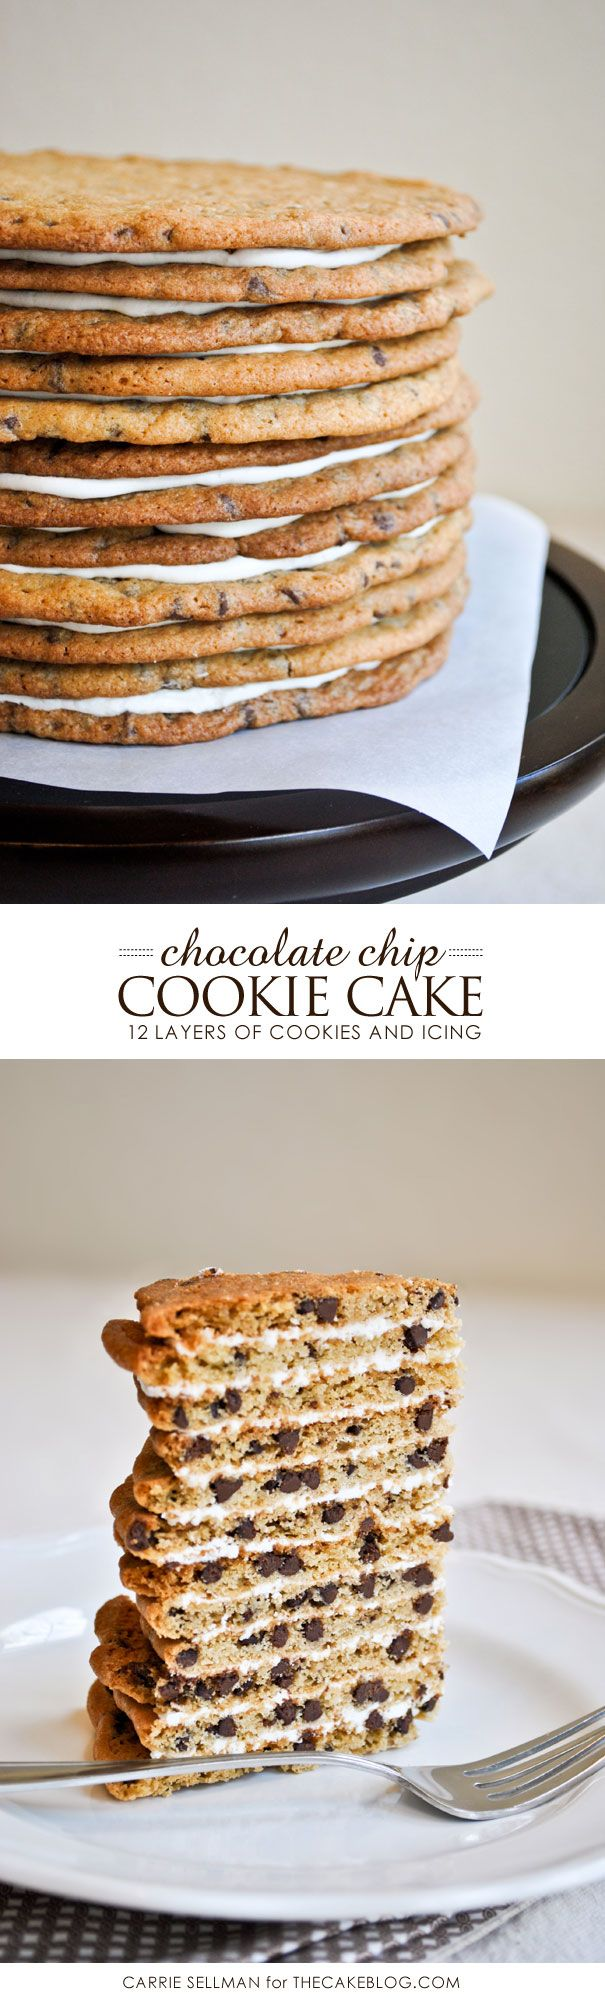 celebrate Chocolate Chip Cookie Day on May 15th!  | 12 Layer Chocolate Chip Cookie Cake  |  Carrie Sellman for TheCakeBlog.com